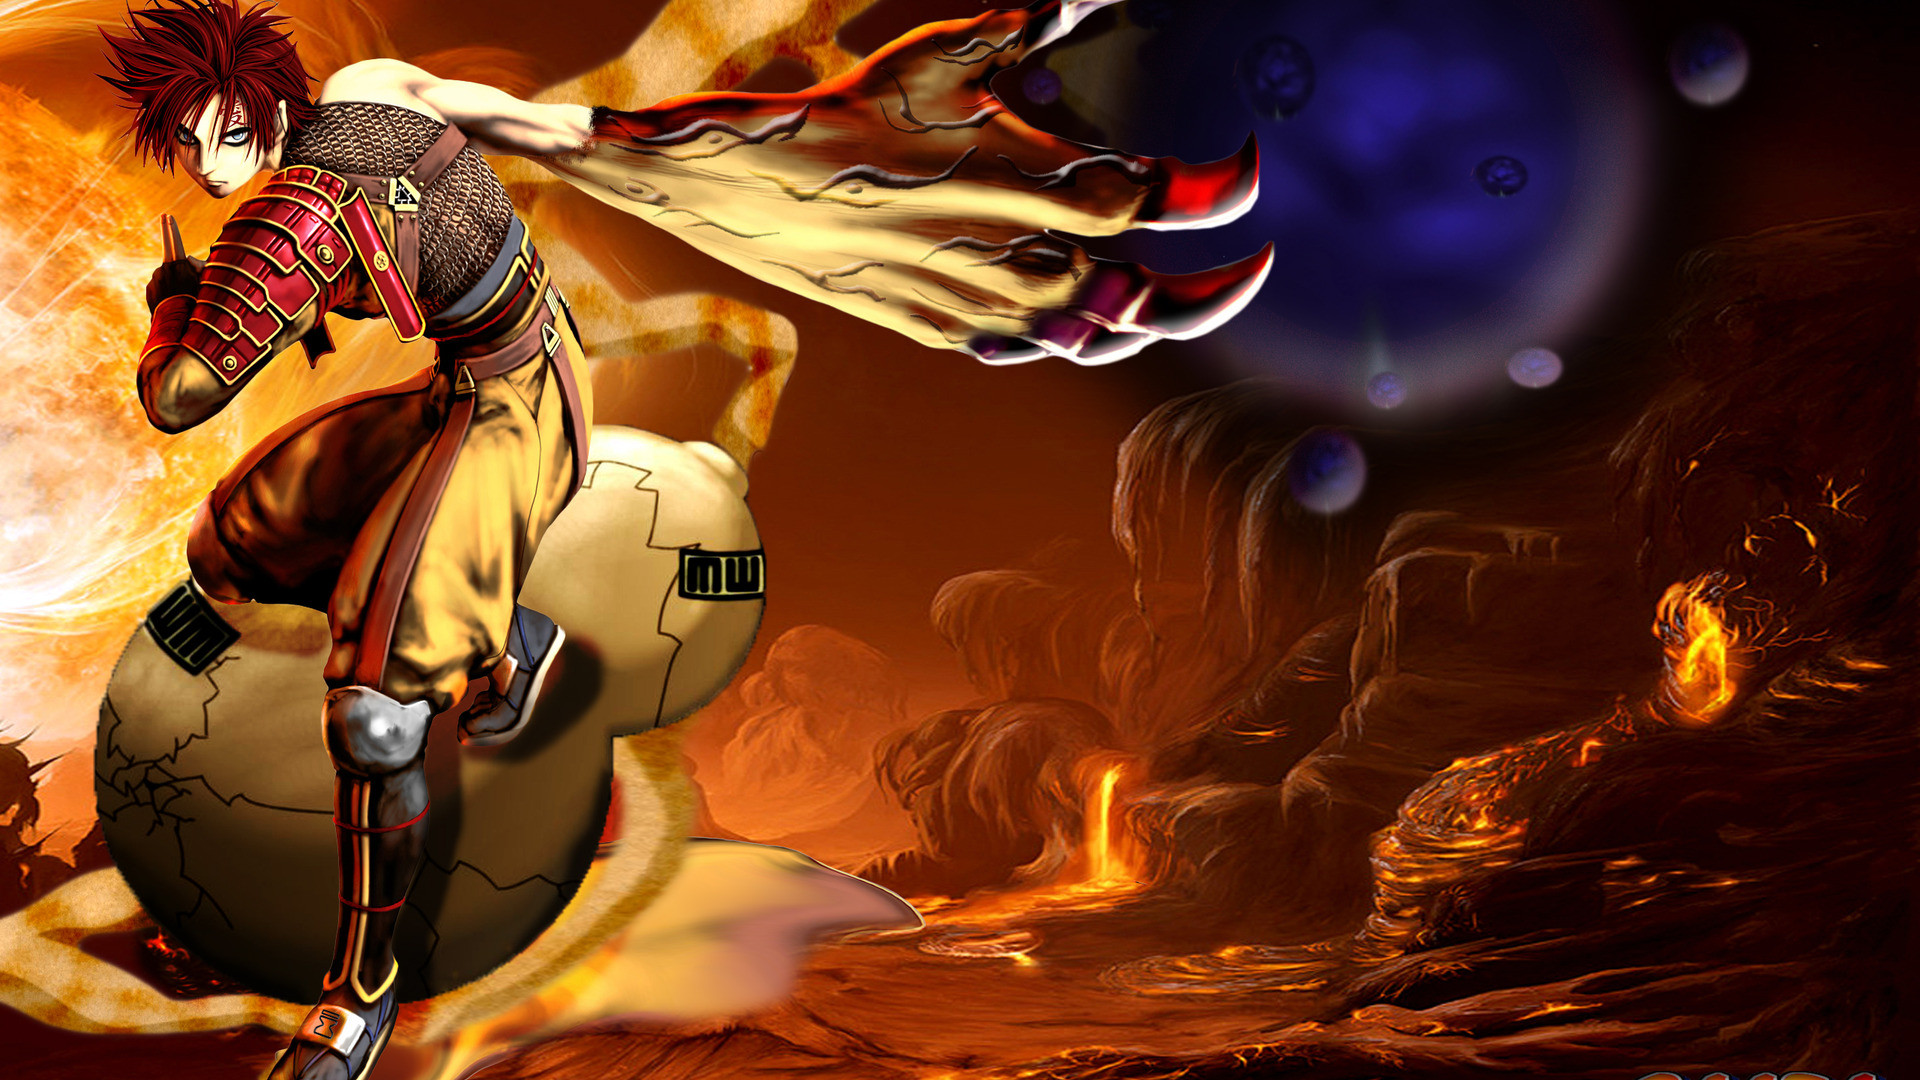 Naruto Wallpapers Wallpaper 1600×1200 Naruto HD Wallpapers Download (31  Wallpapers) | Adorable